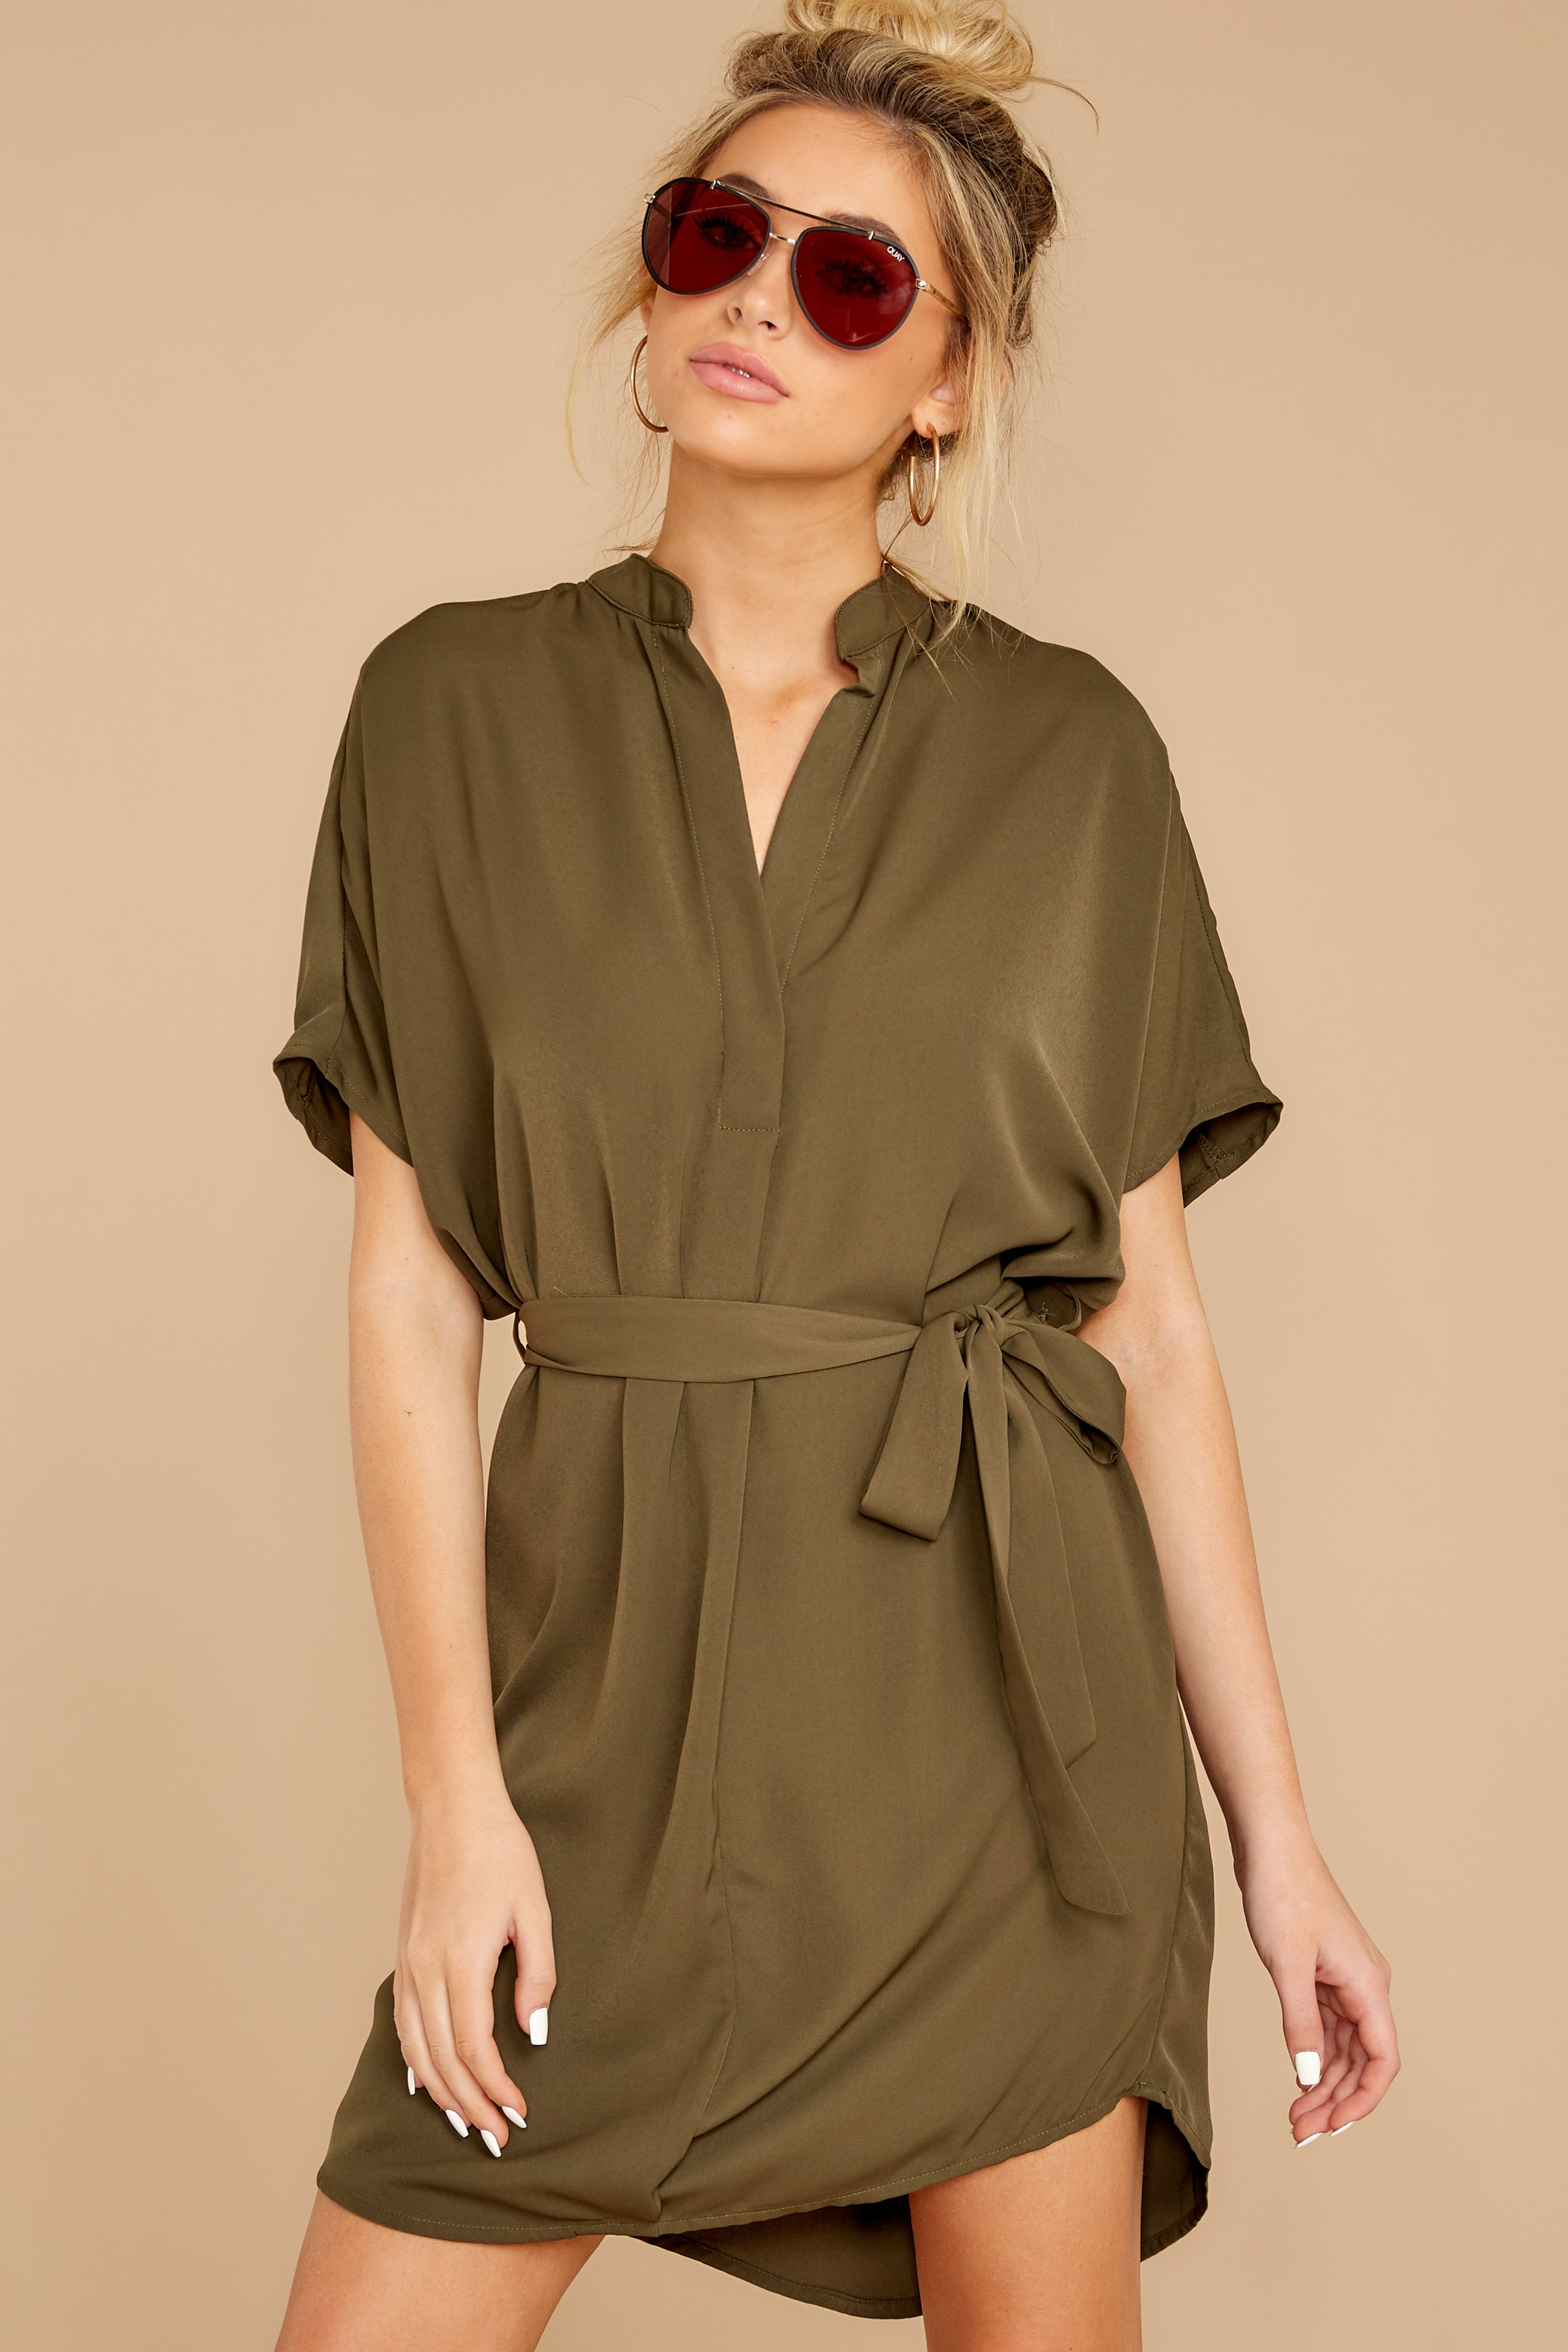 7 Around The Clock Olive Green Dress at reddress.com